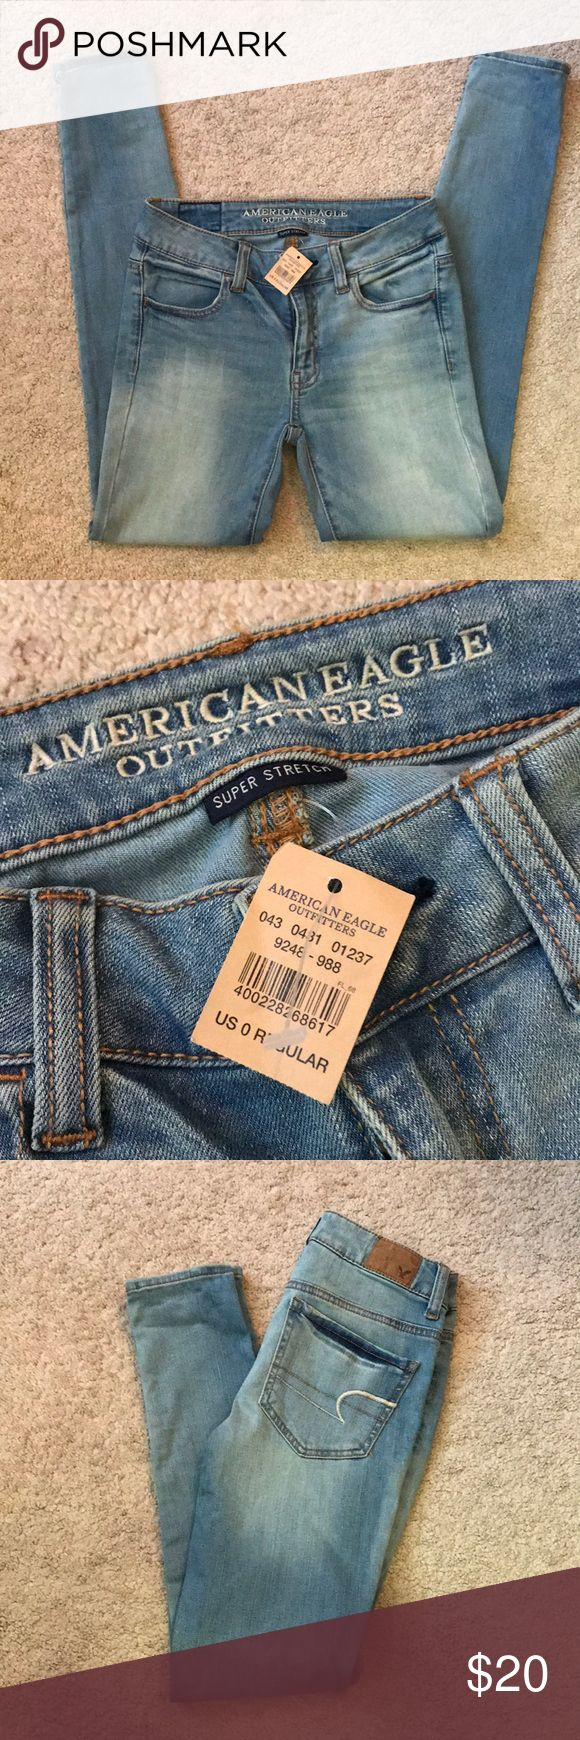 NWT American eagle skinny jeans Size 0 regular brand new AE skinny jeans. Paid $50 Cannot model they do not fit American Eagle Outfitters Jeans Skinny